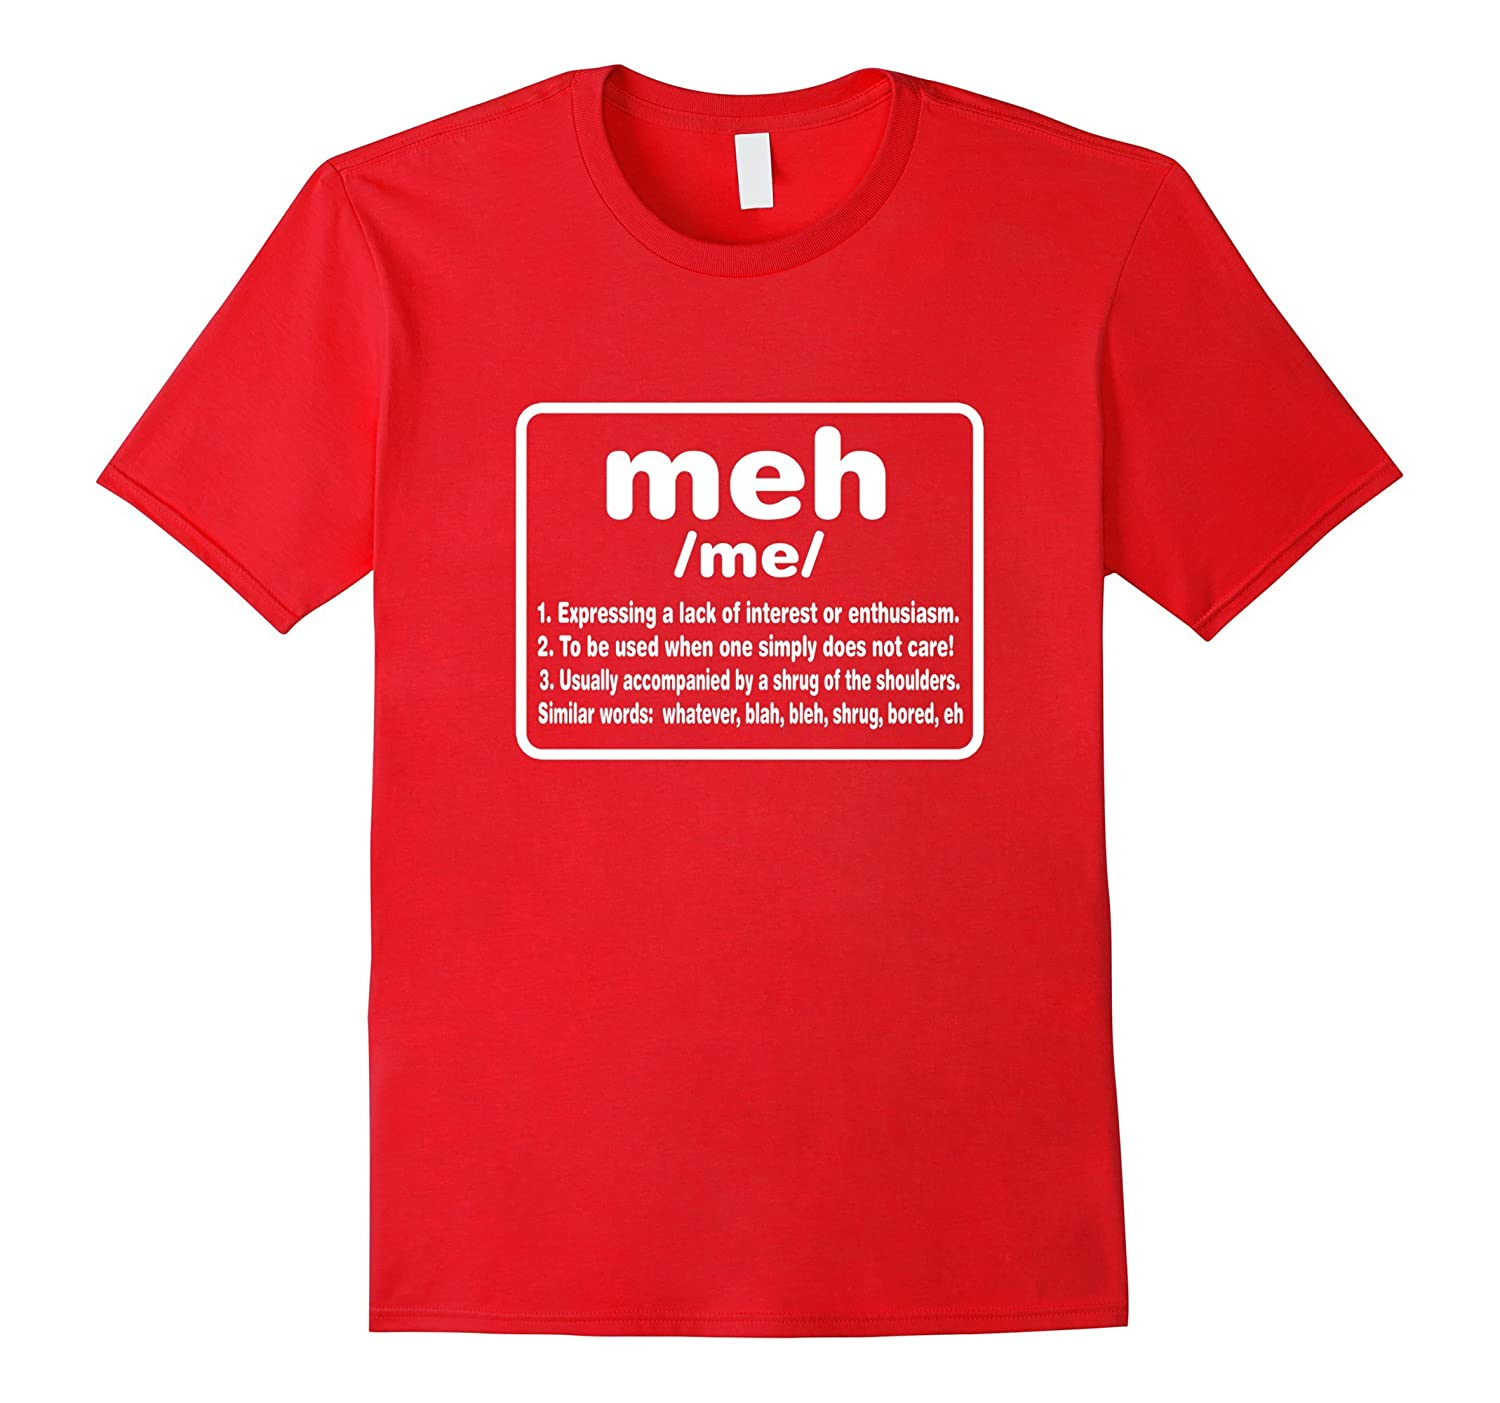 Meh Definition T-shirt Funny Teen Lingo Shirt-TH